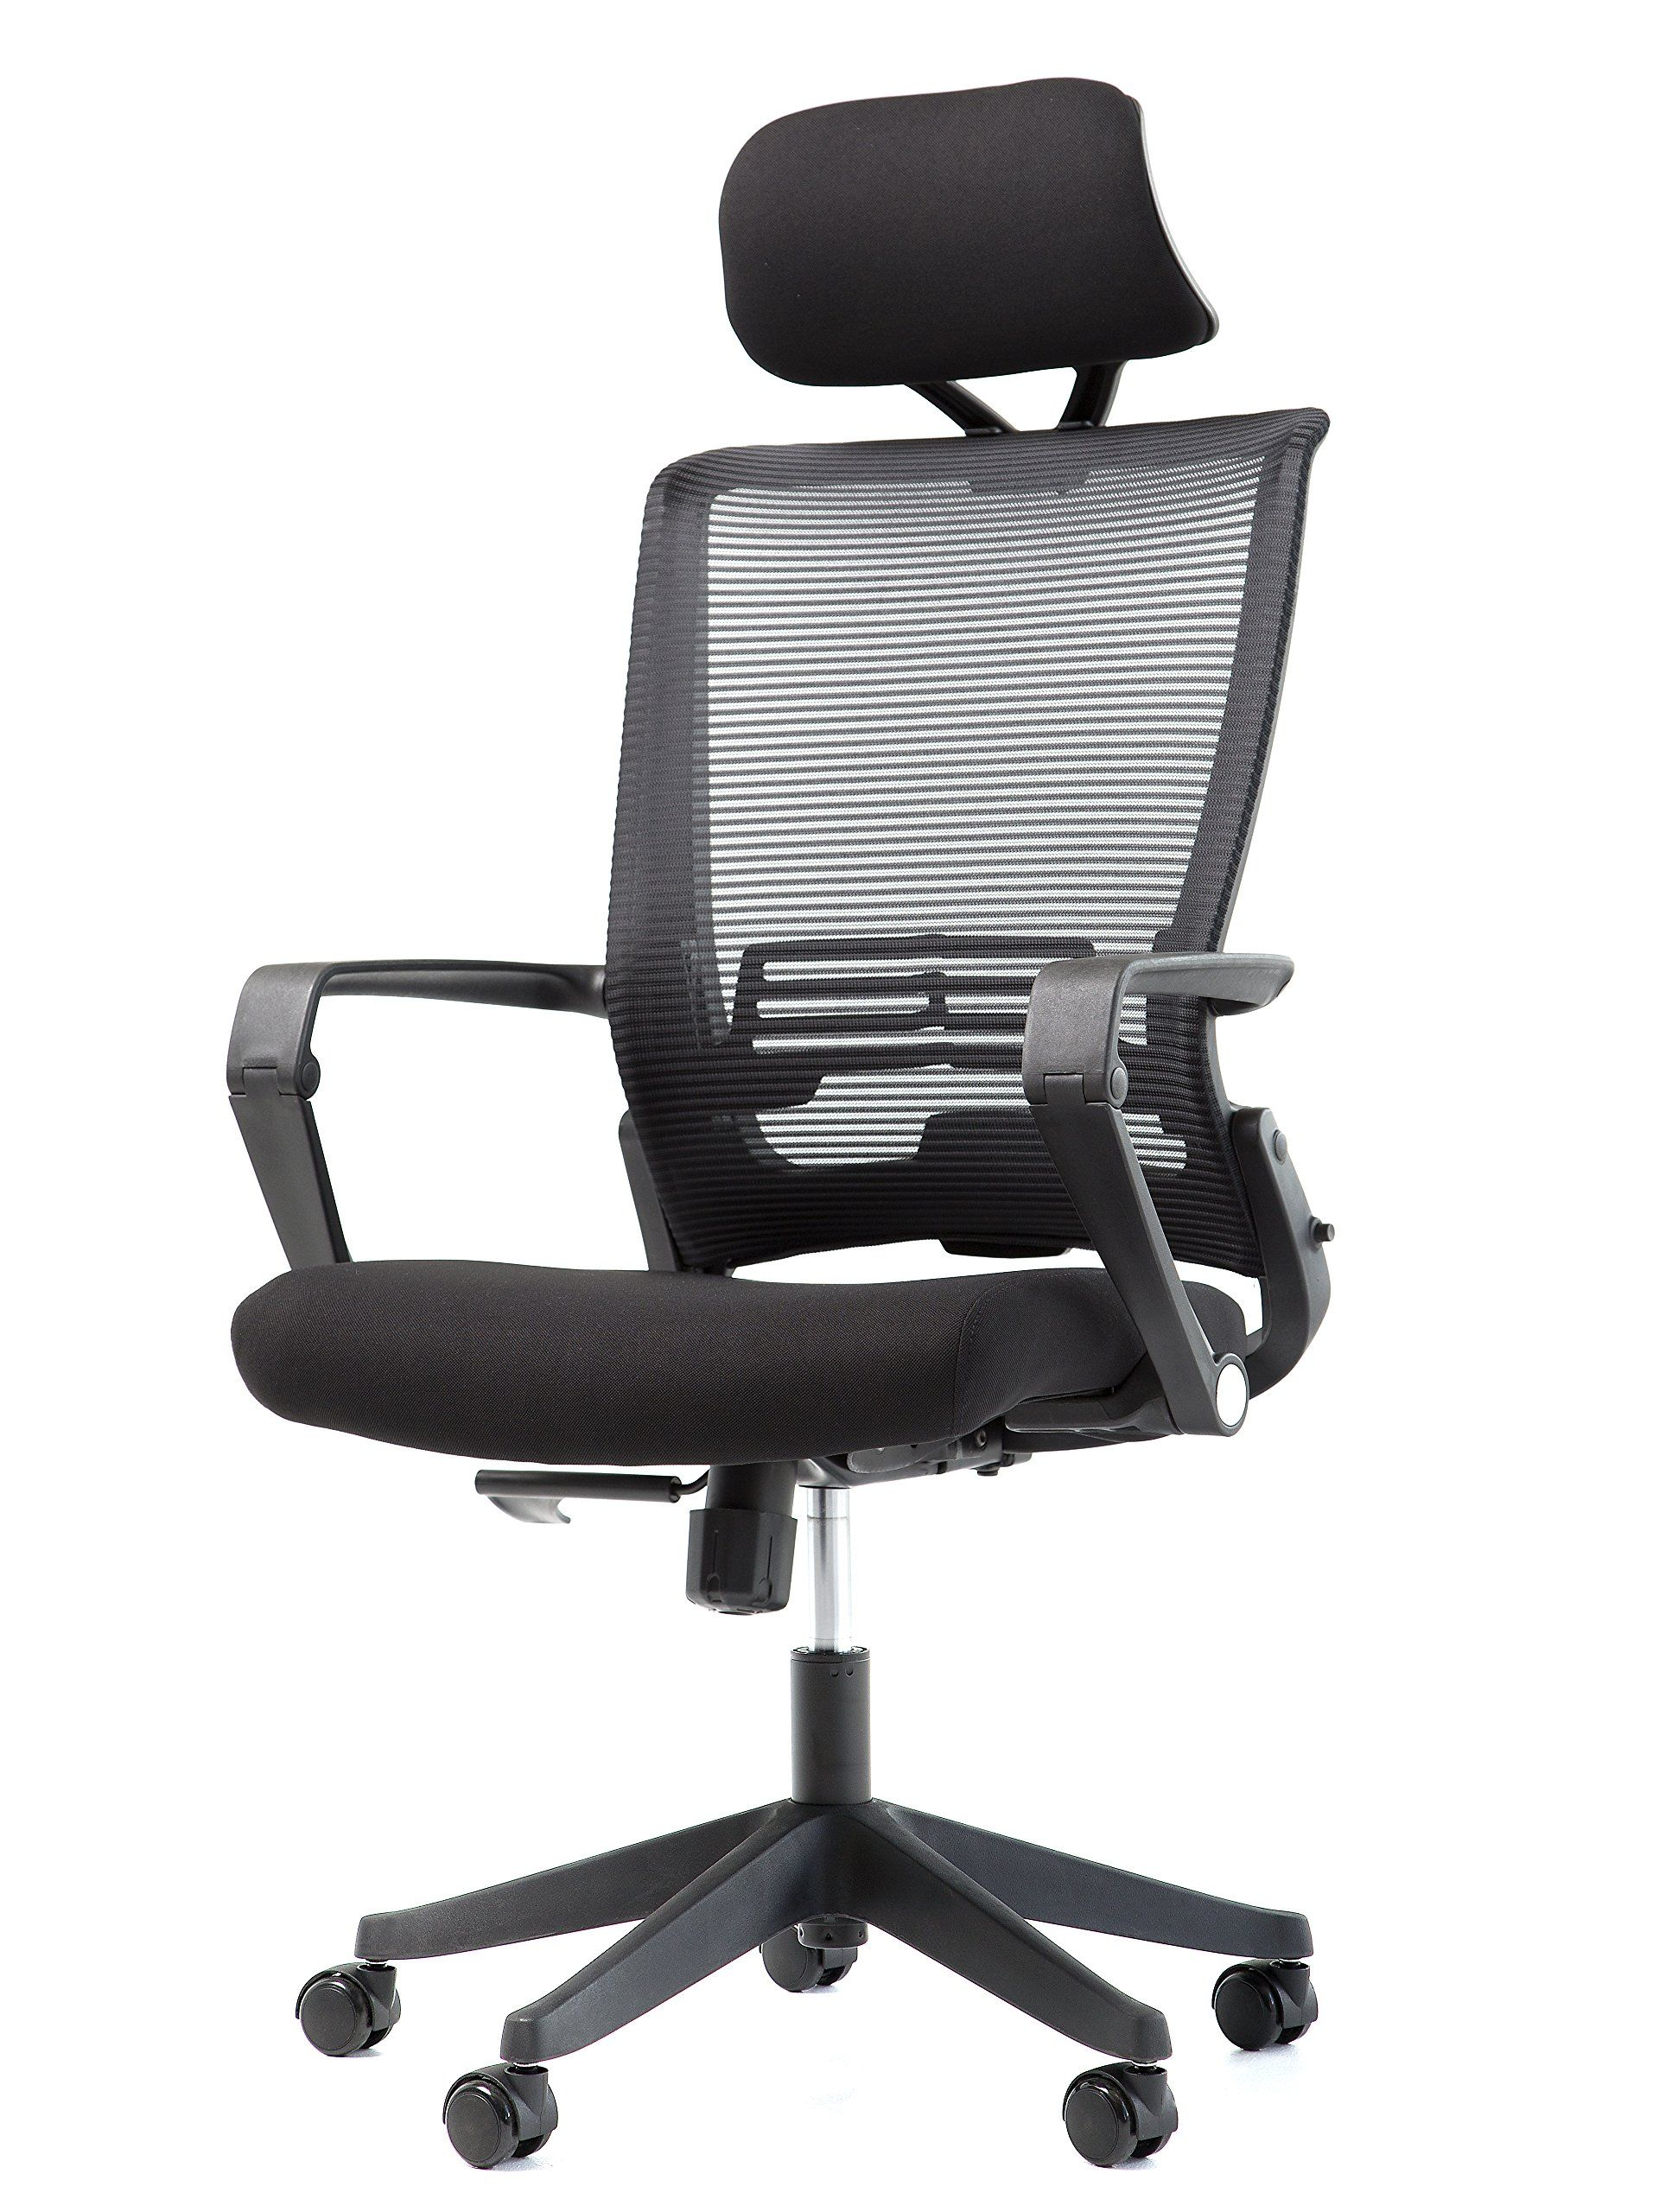 OFFICE FACTOR Mesh Back Office Chair with Headrest- Folding Office